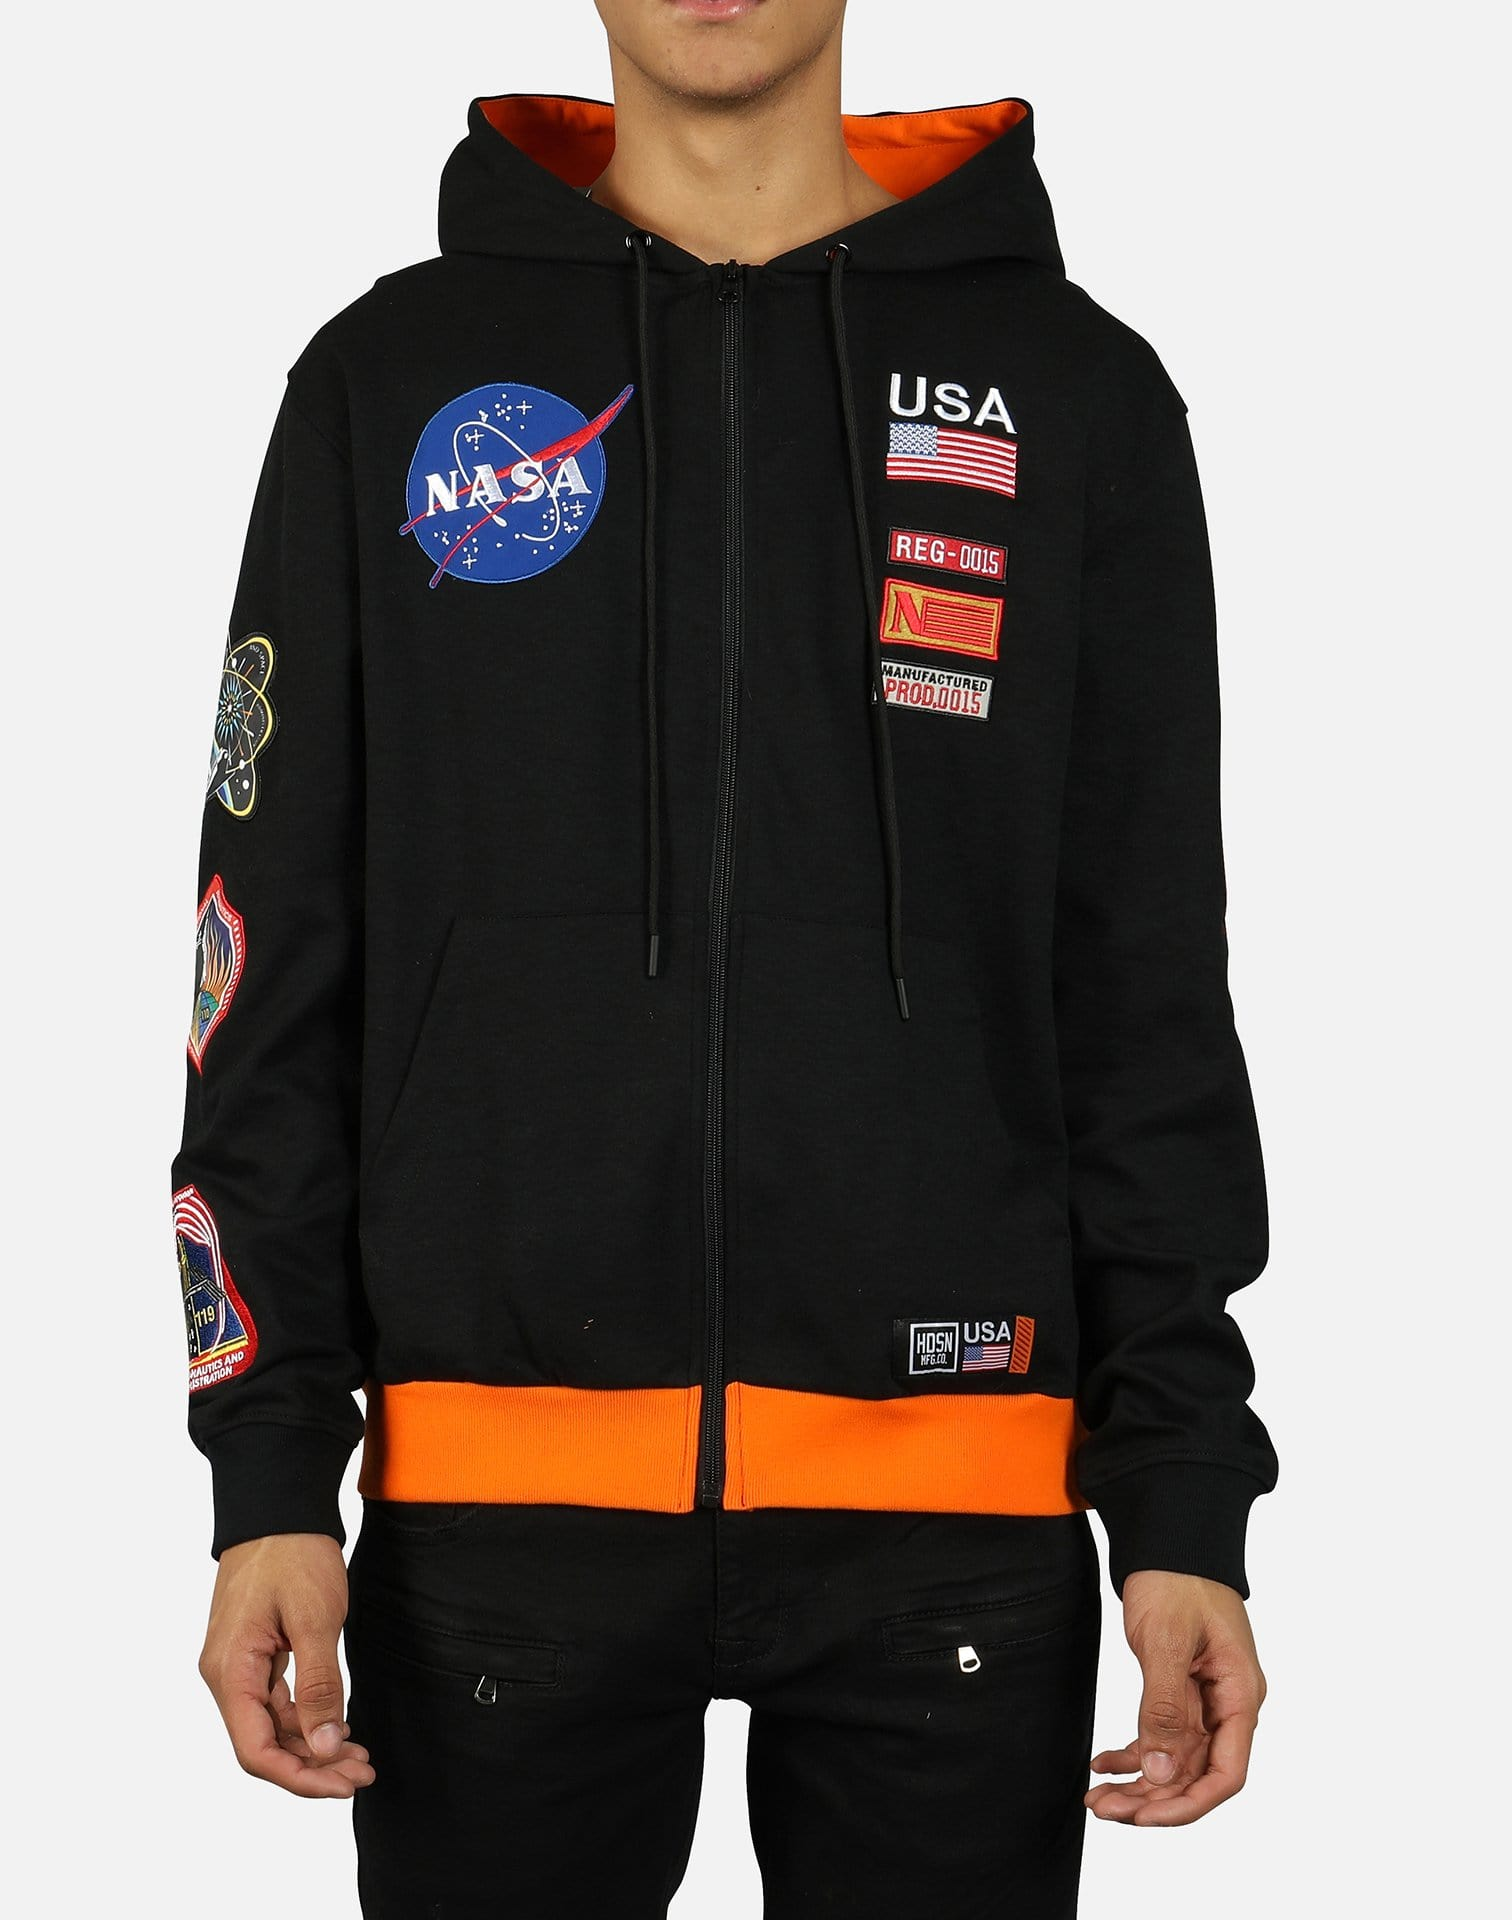 Hudson Men's NASA Future Meatballs Space Suit Full-Zip Hoodie